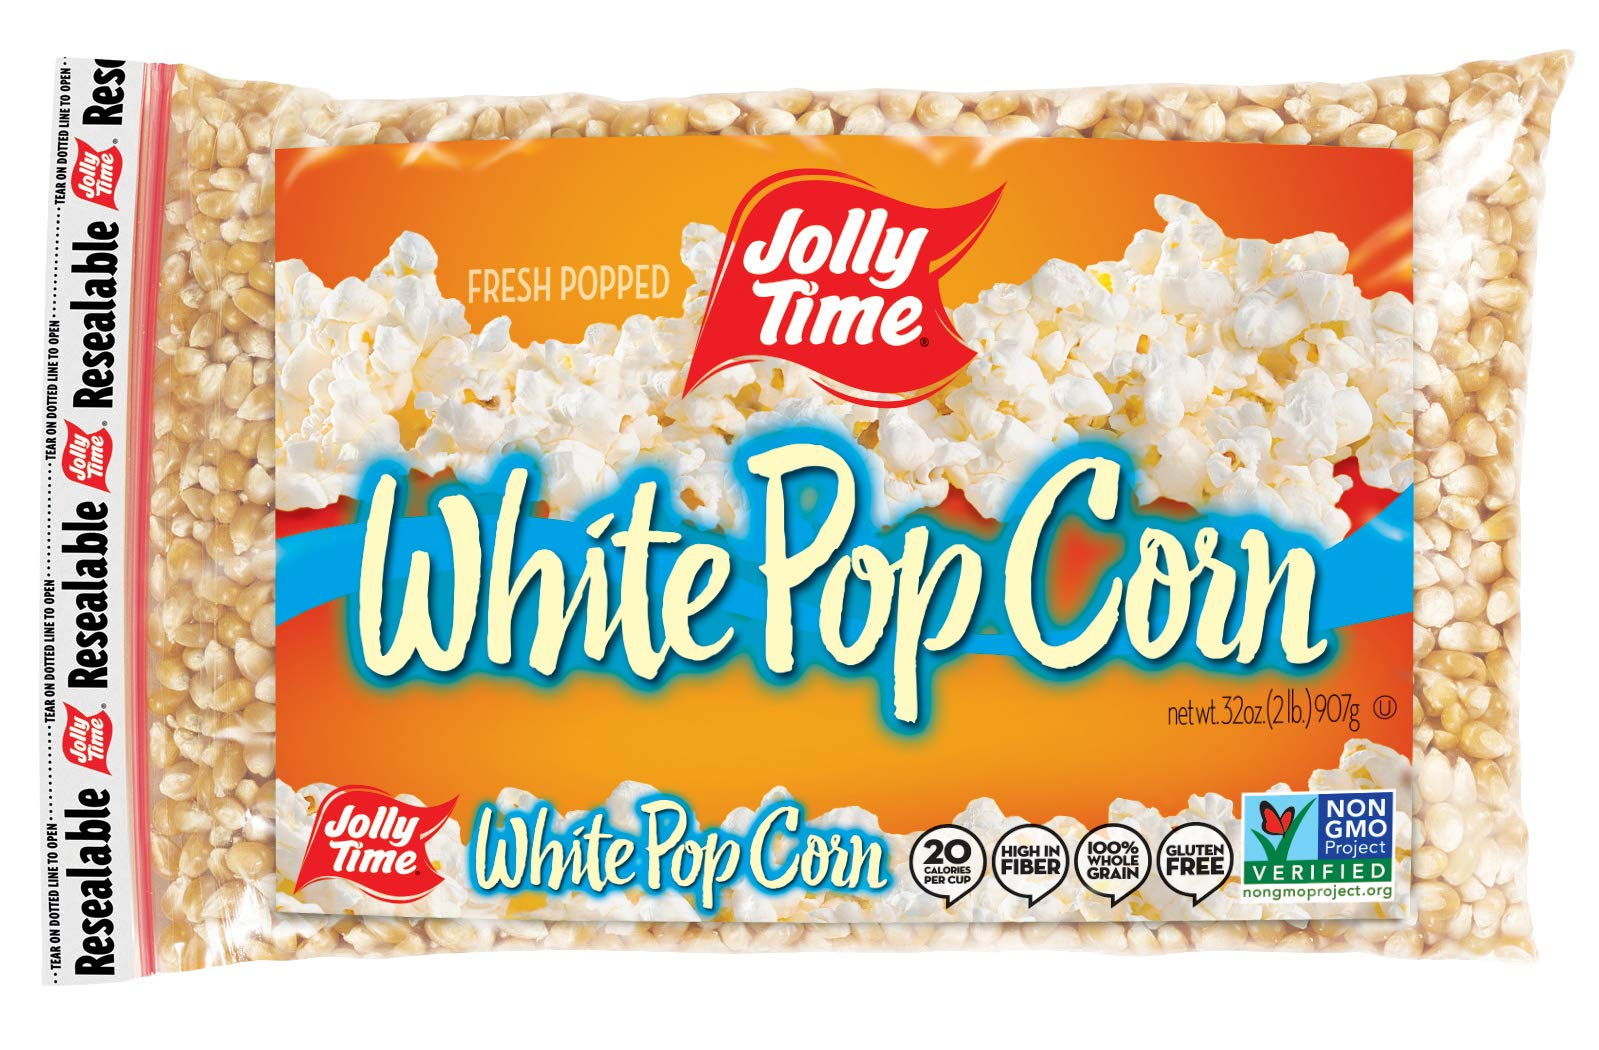 JOLLY TIME White Popcorn Kernels - Bulk Stovetop Natural Popping Corn, 2 lb. Bags (Pack of 12) by Jolly Time